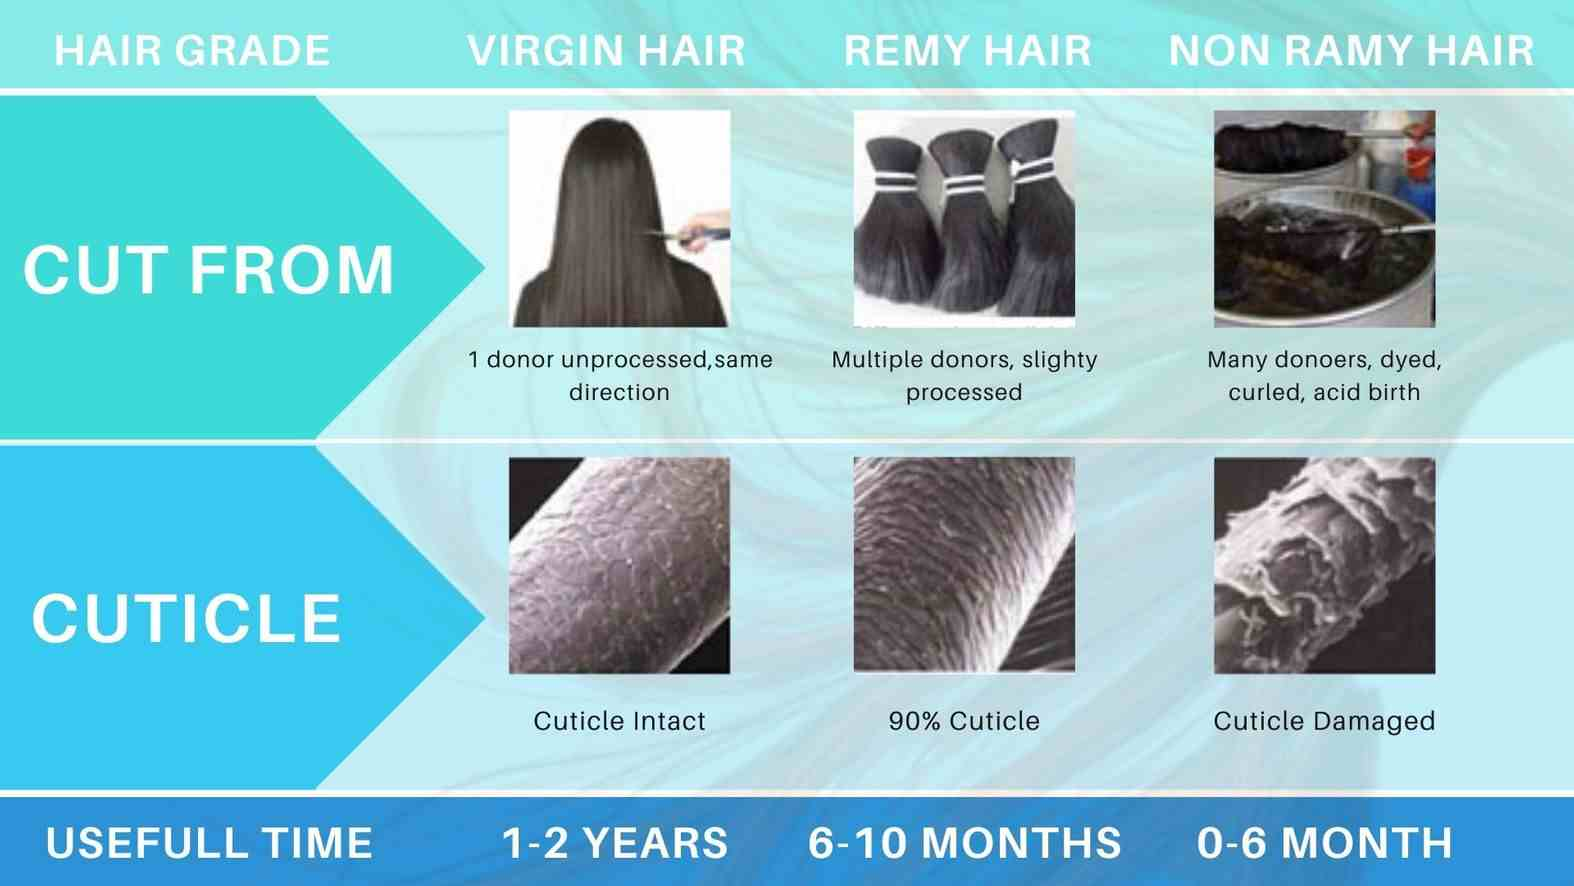 Remy Hair difference full chart